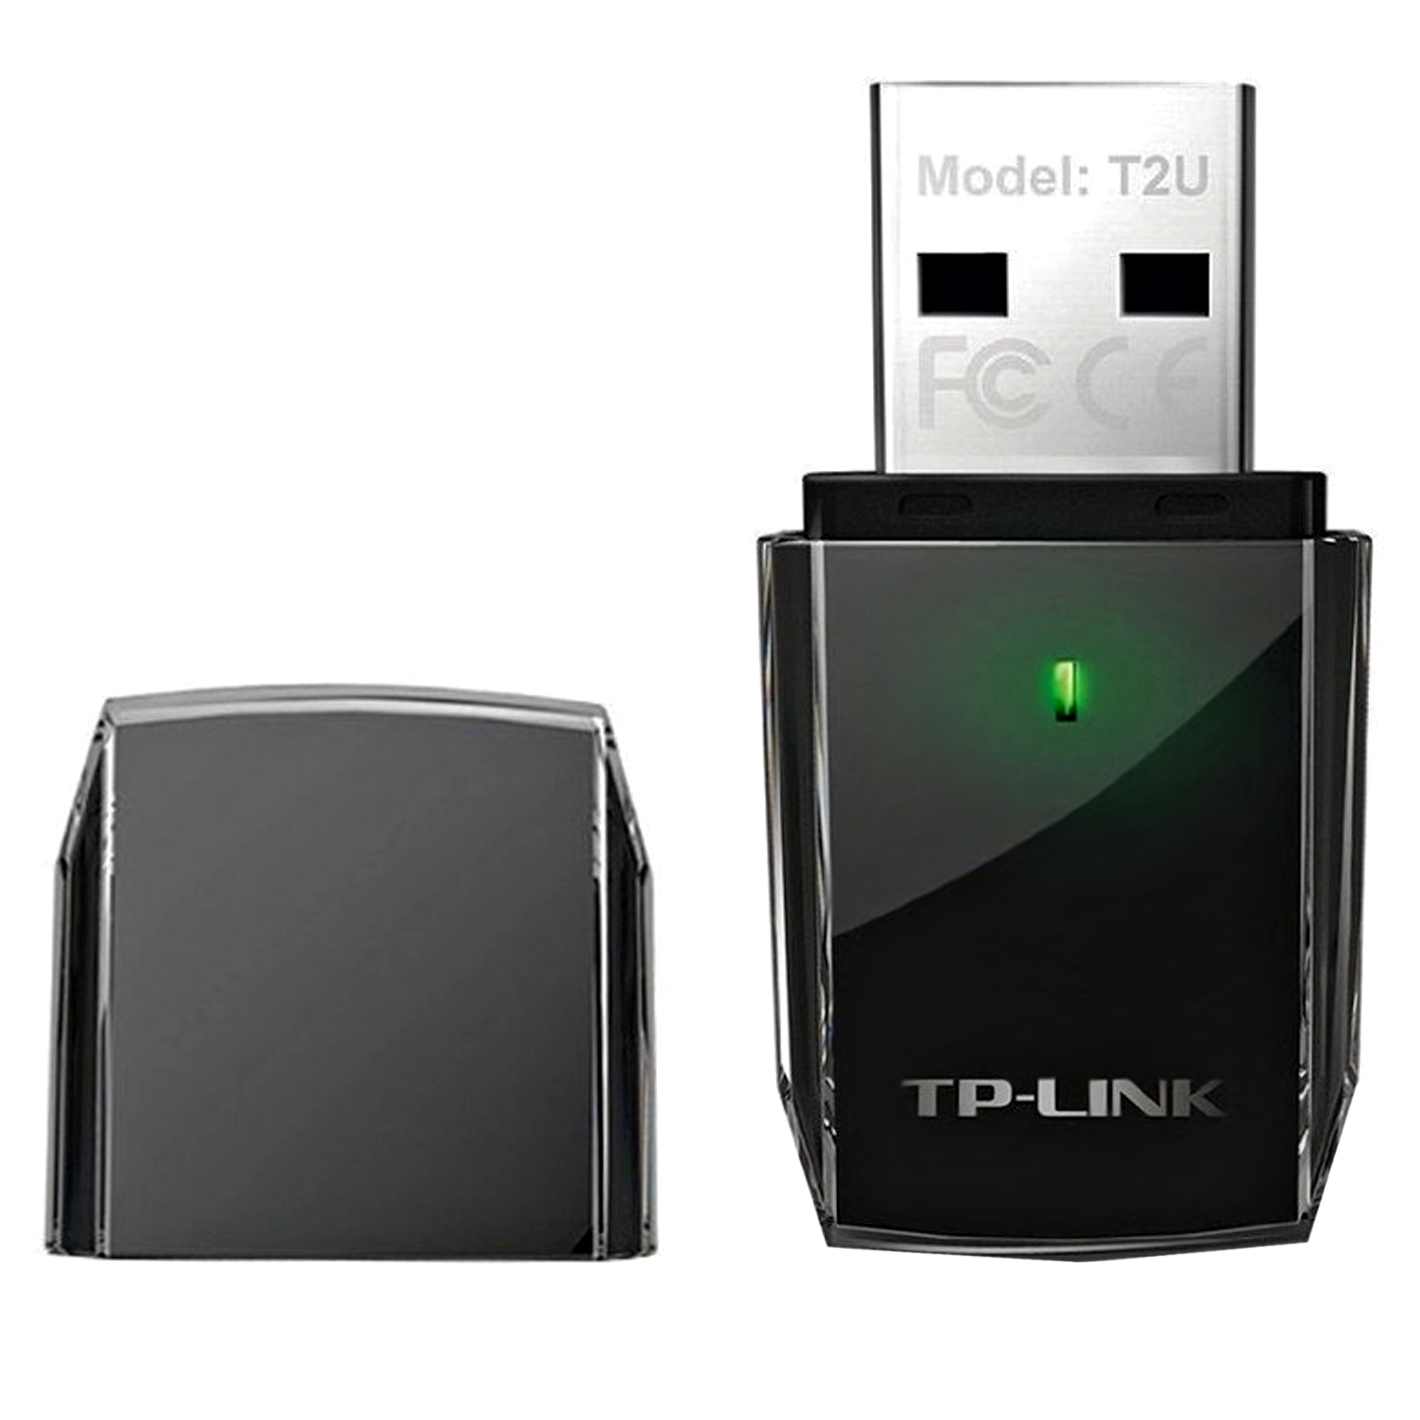 TP-LINK AC600 WLAN 600MBIT/S NETWORKING CARD